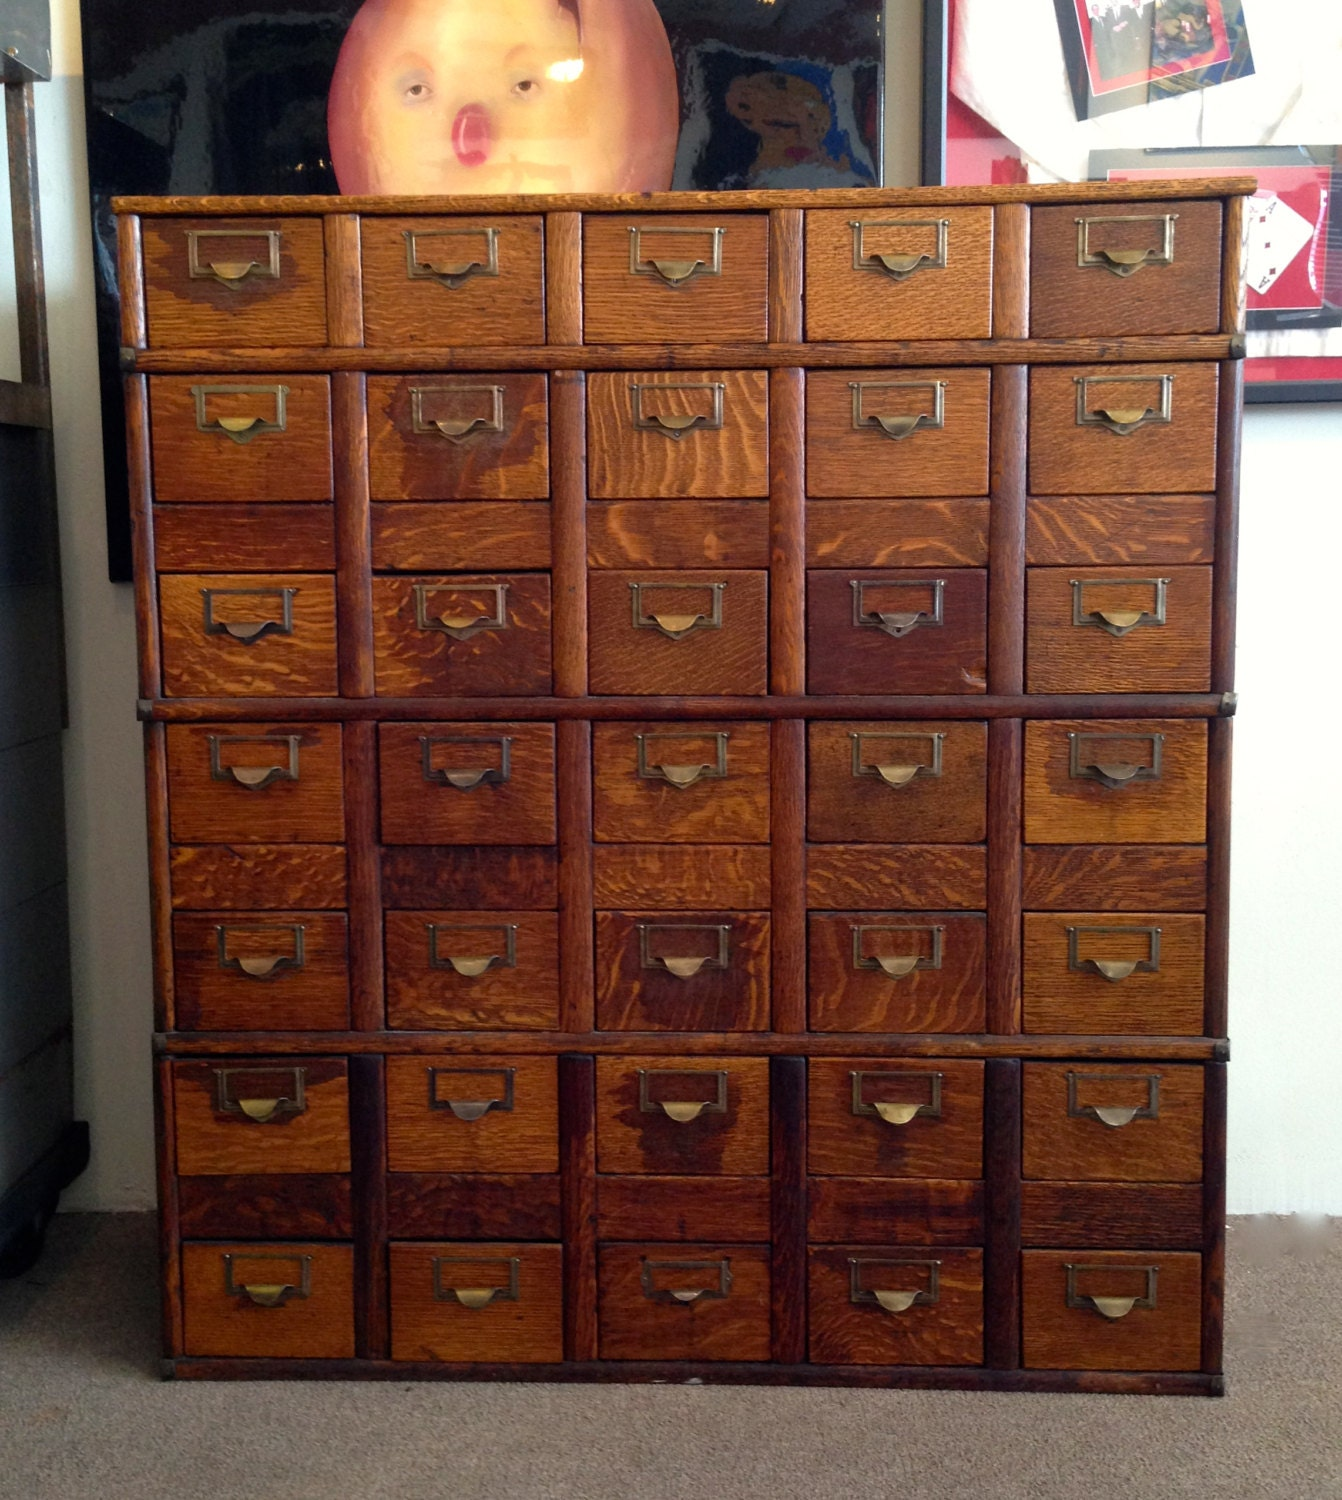 Vintage Oak Globe 35 Drawer Library Card Catalog Storage Cabinet - medusasantiques